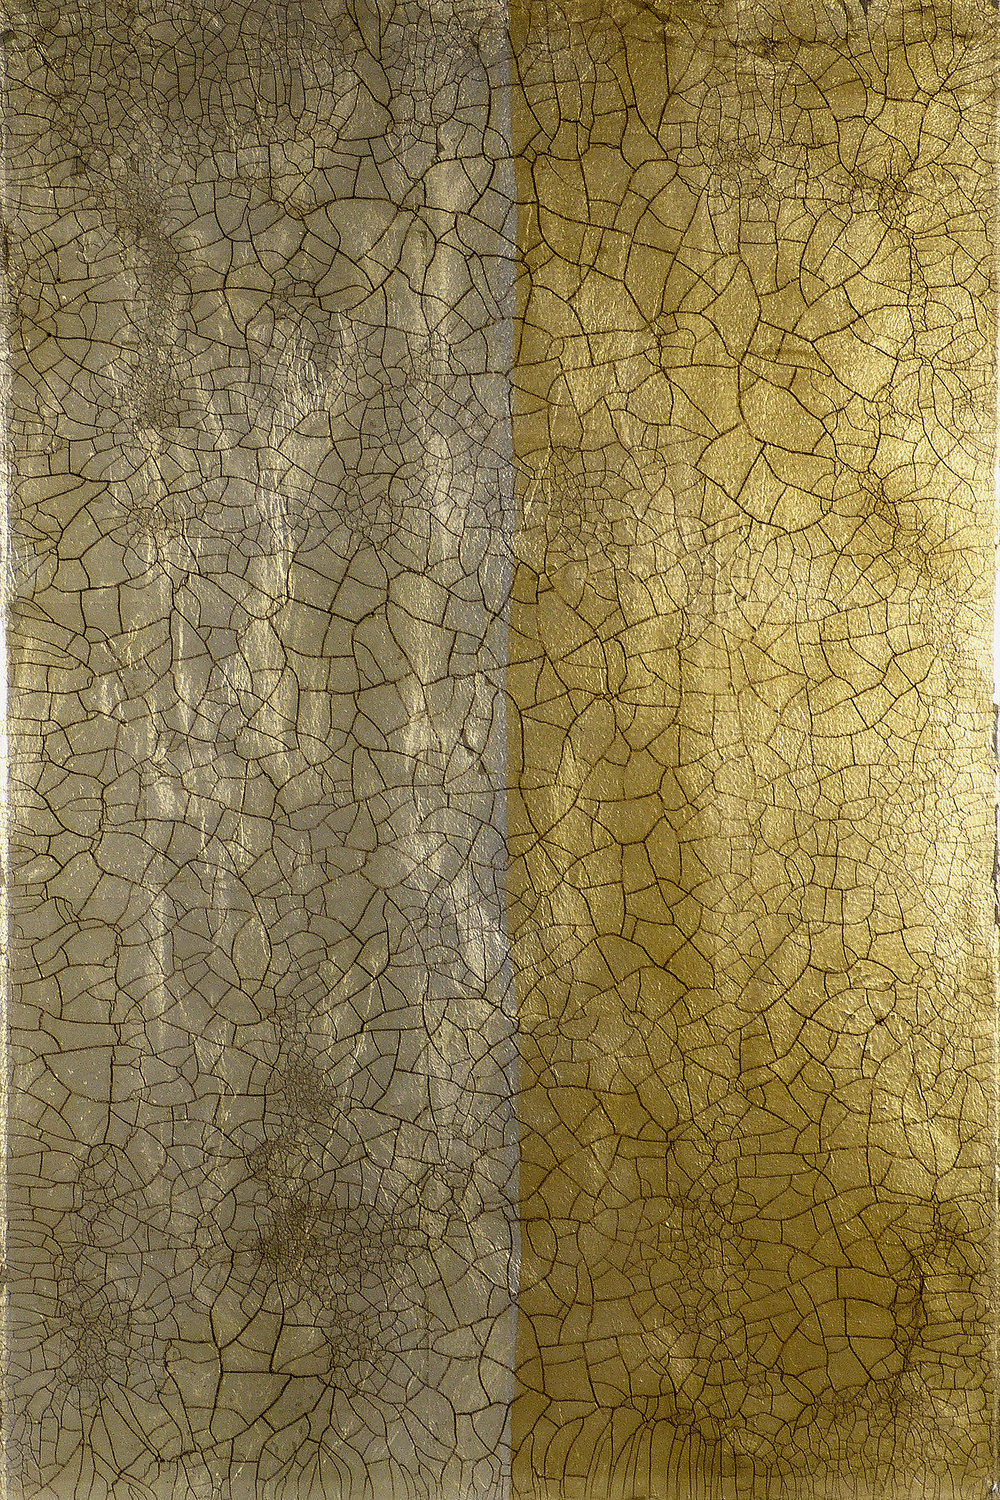 OTAVA 2 | 78x53cm gilded silver leaf and mixed media on board with high gloss epoxy resin | £1,650.00